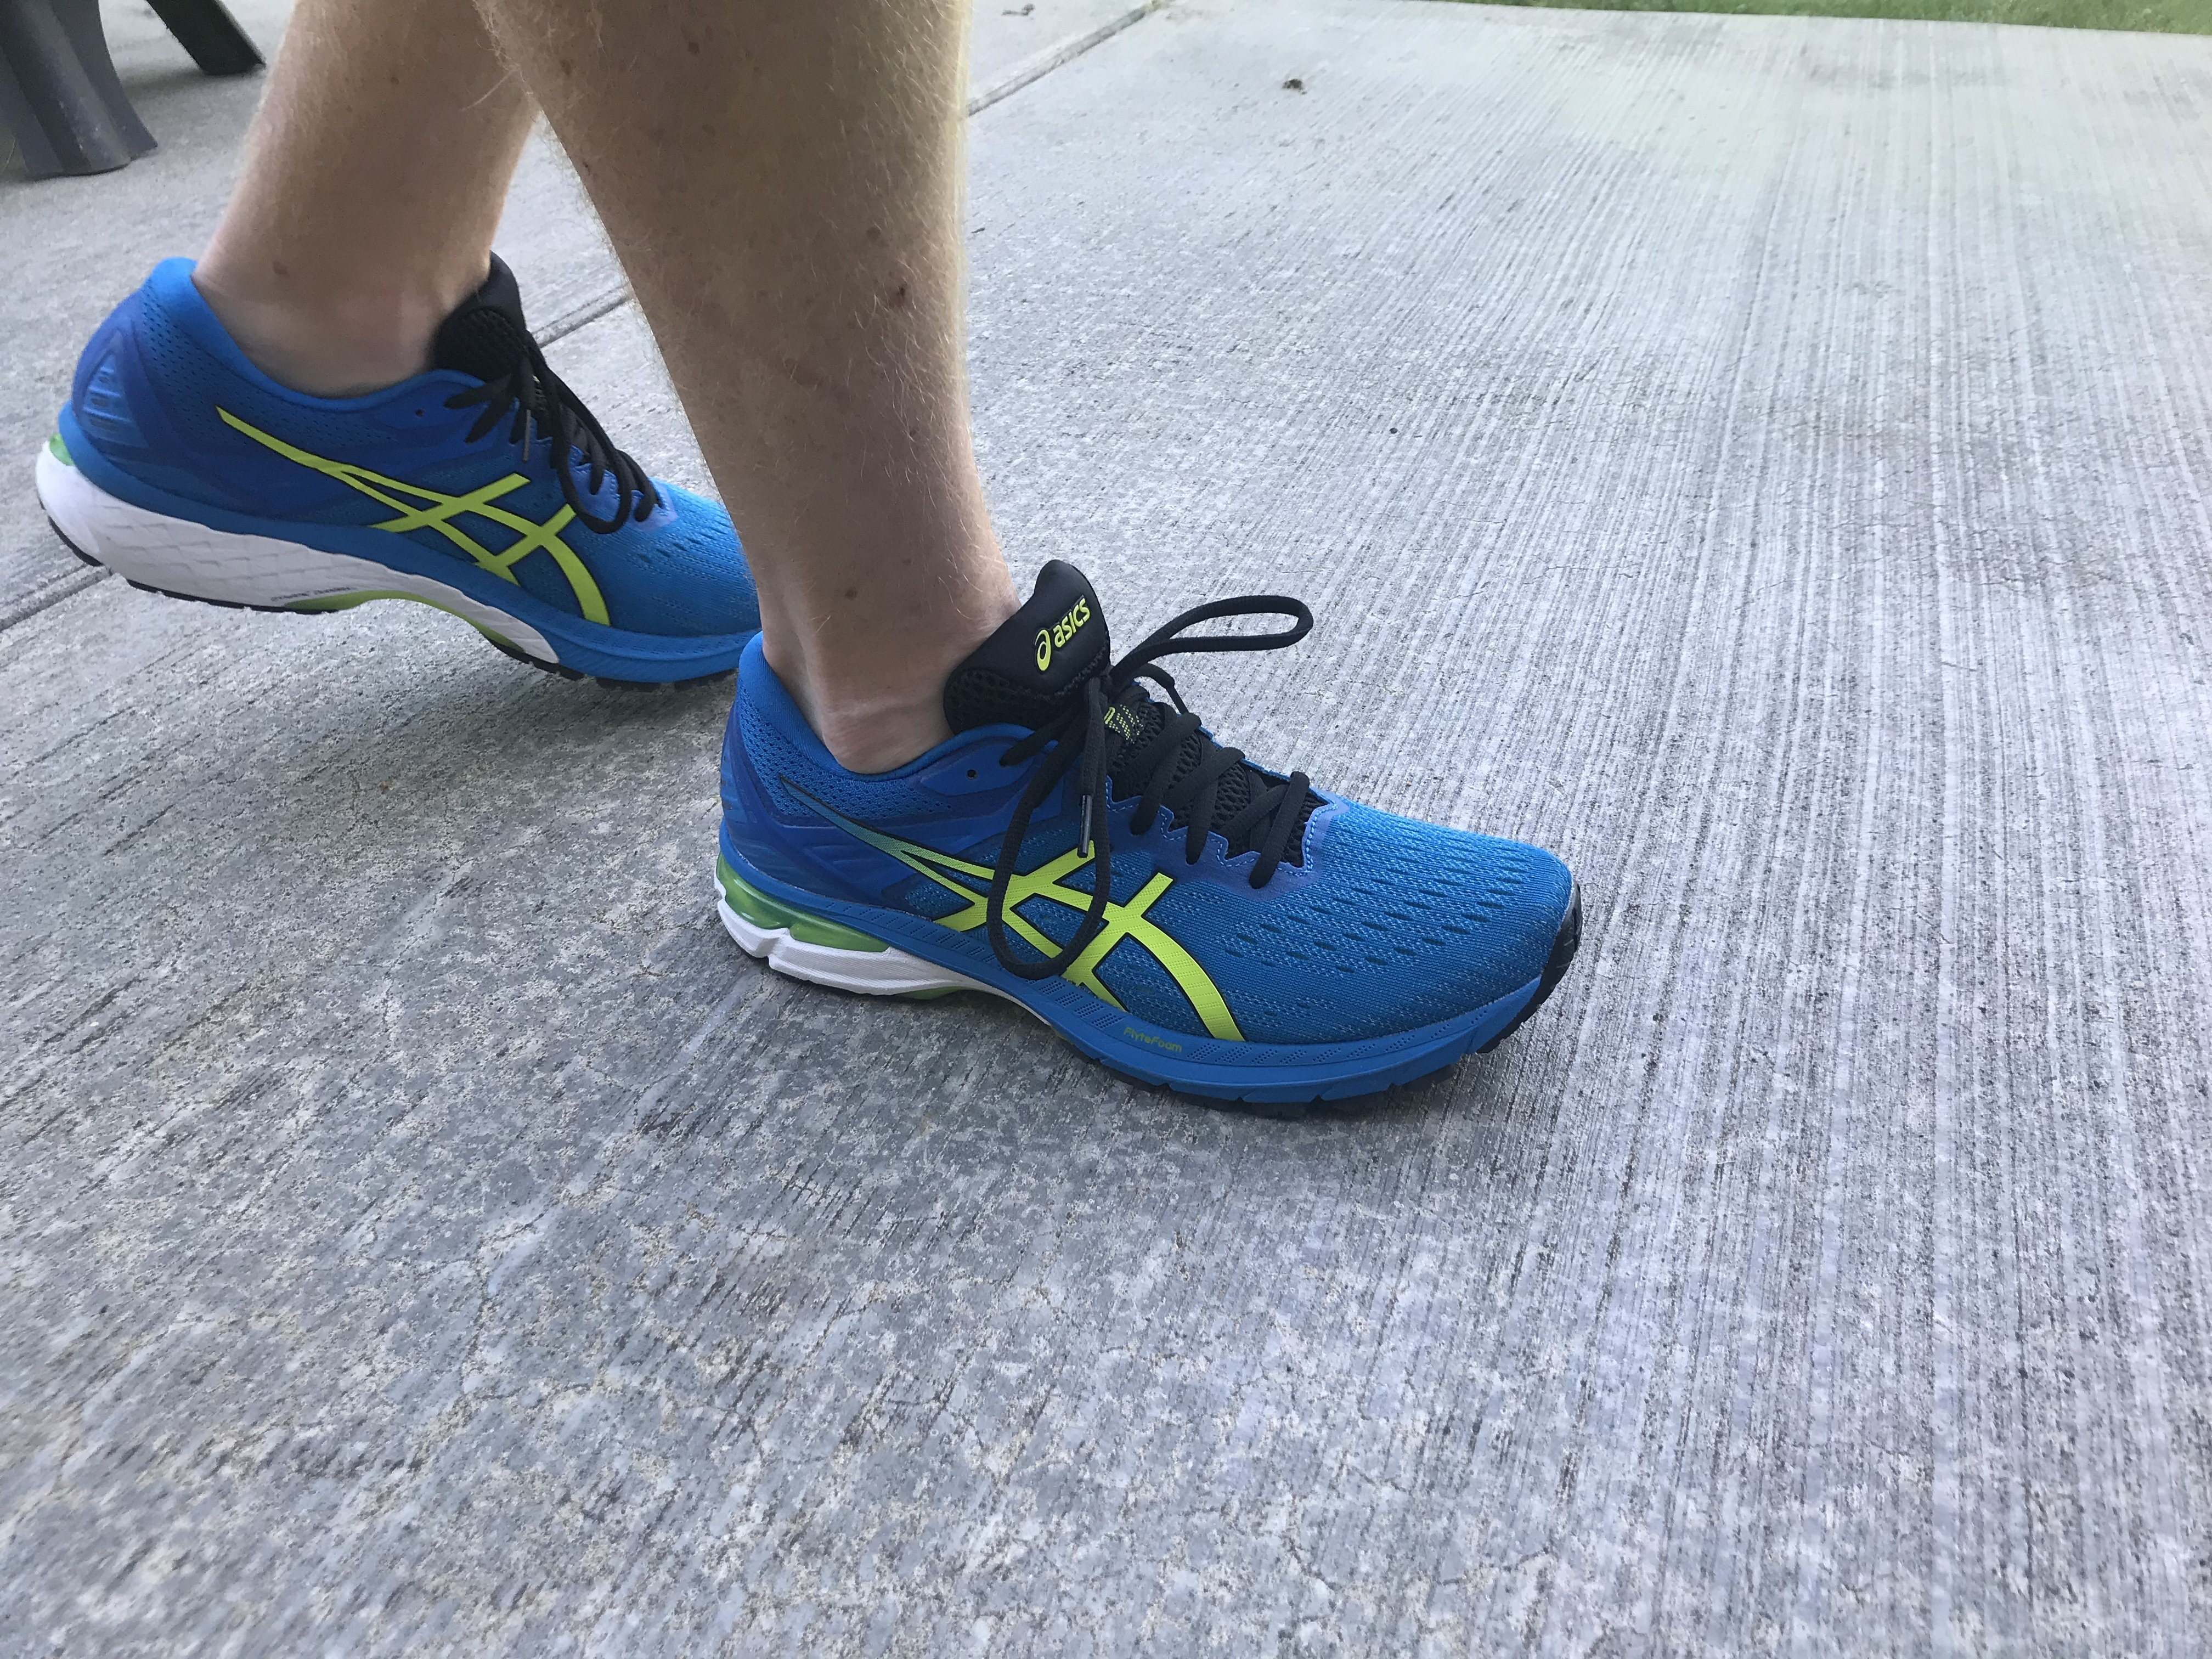 Asics GT-2000 9 First Impresions